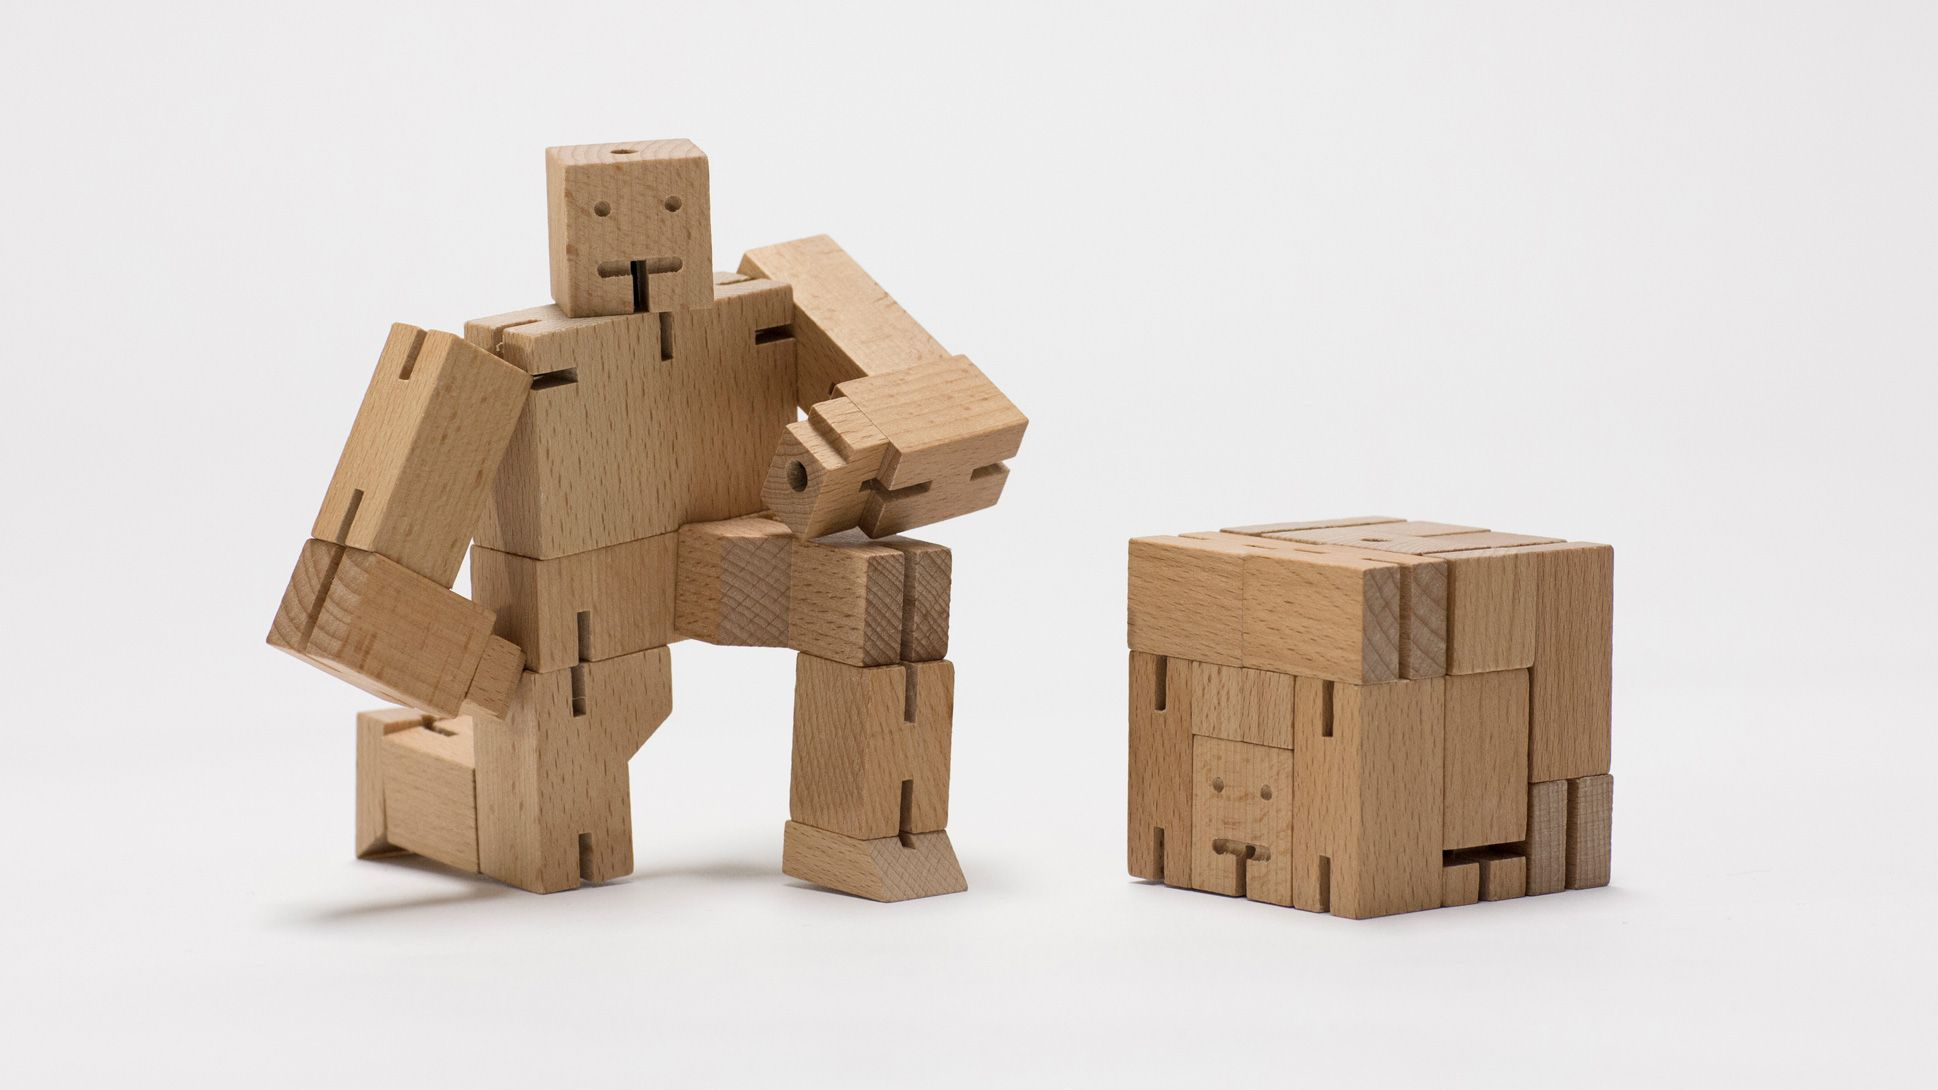 cubebot is a wooden toy robot with elastic joints that can